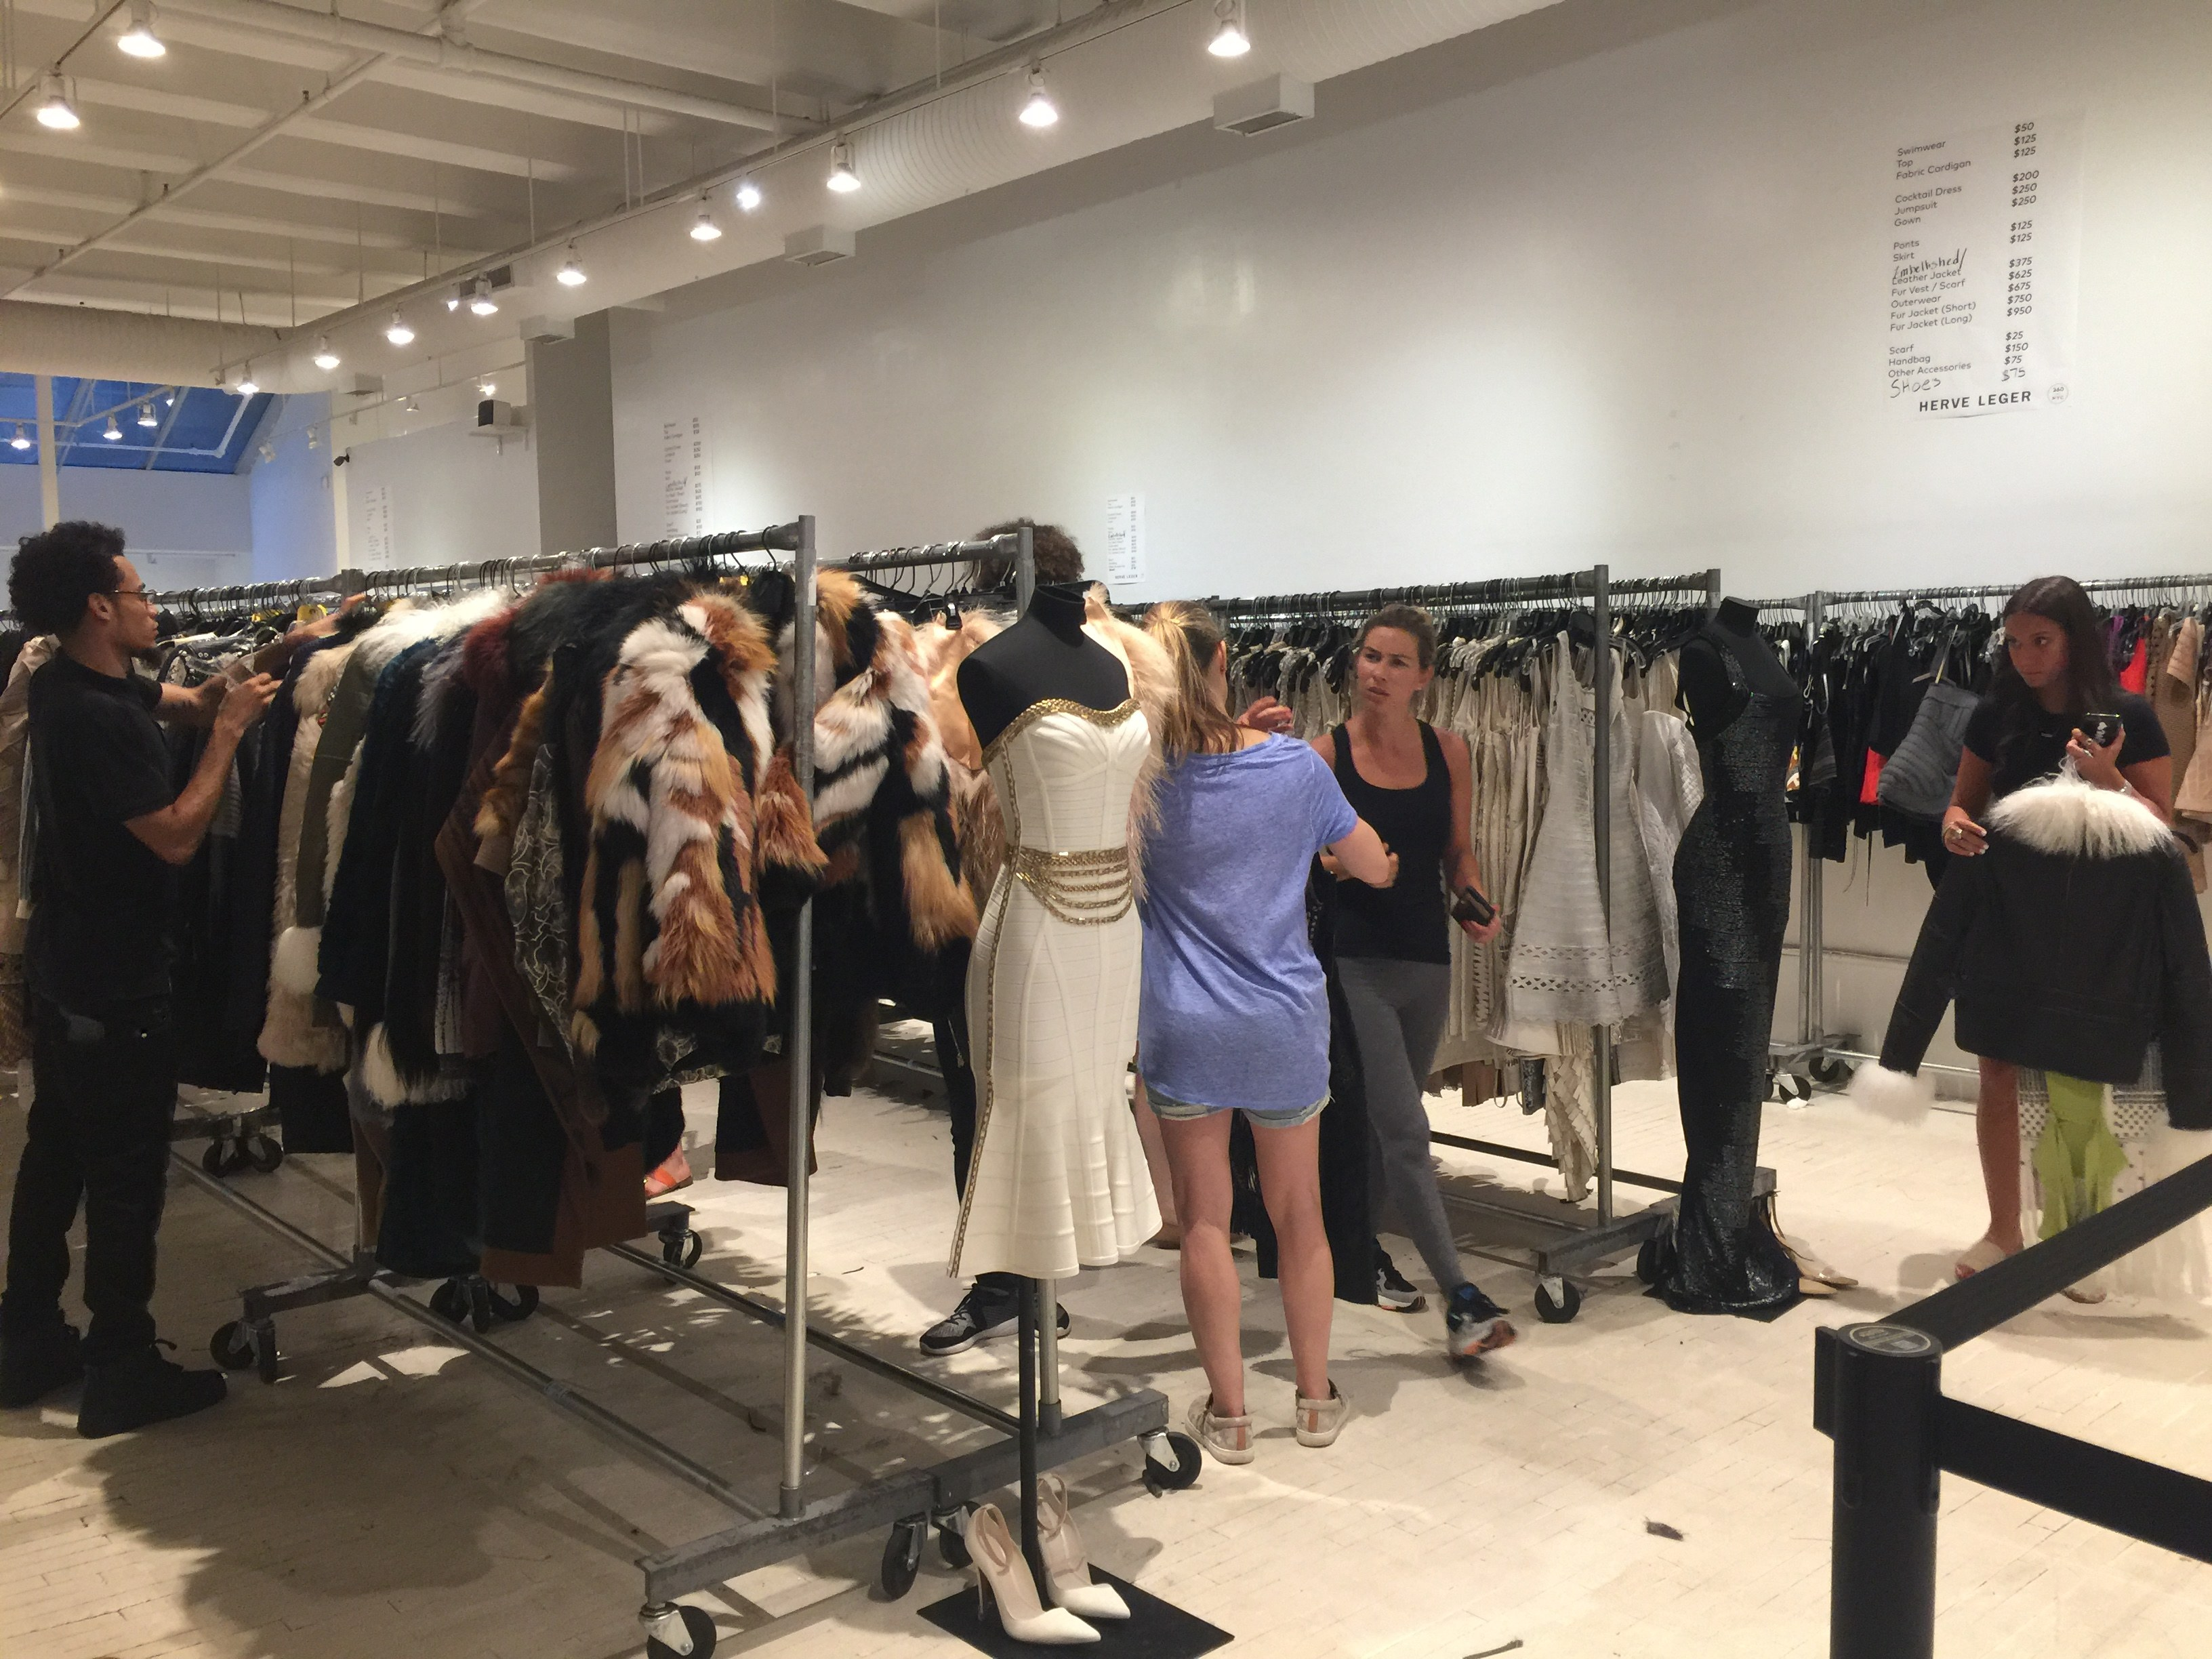 Herve Leger sample sale